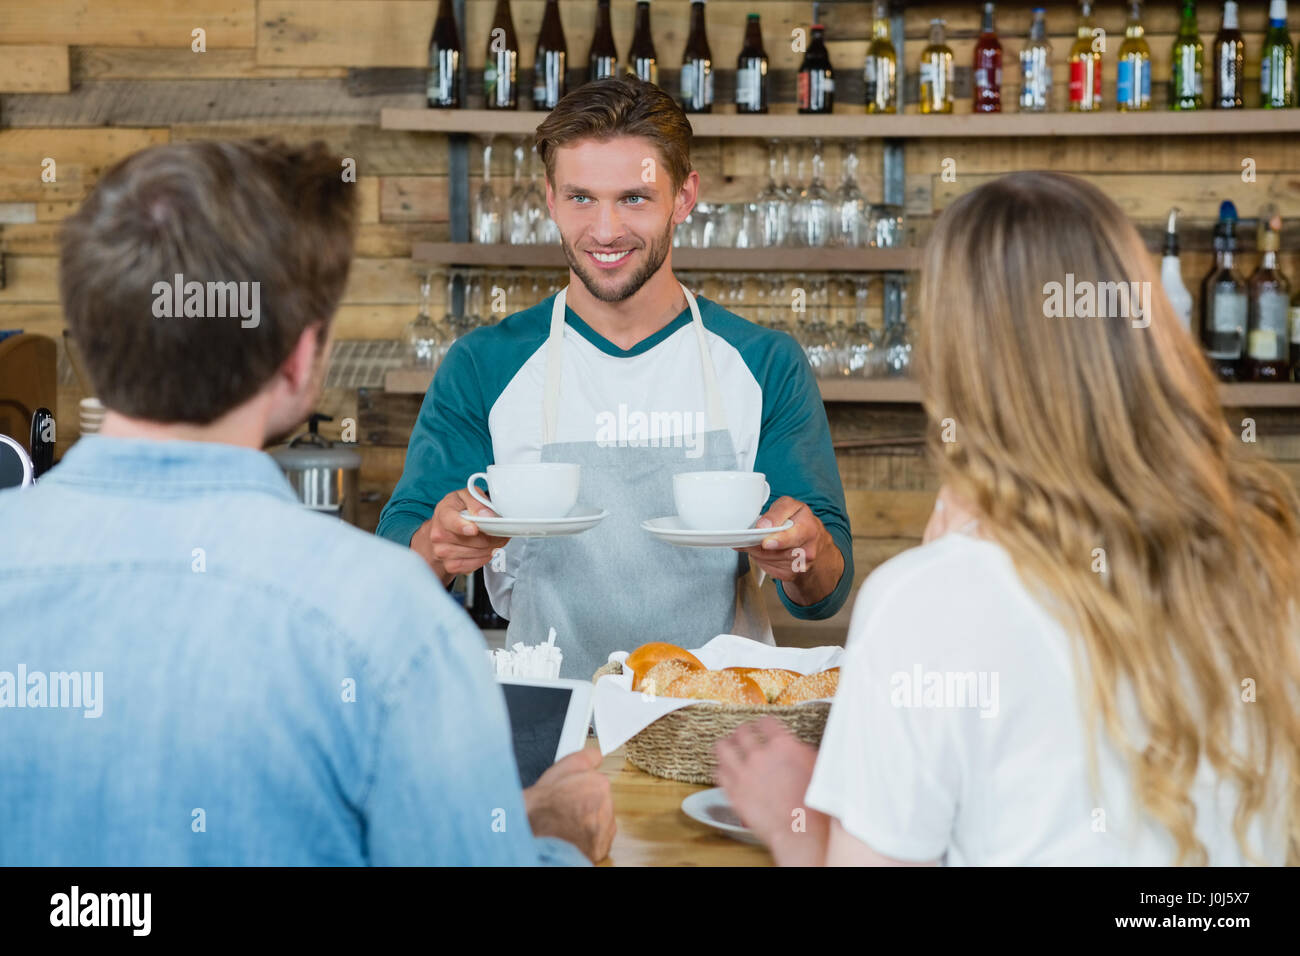 Smiling waiter serving cup of coffee to customers at counter in cafe - Stock Image